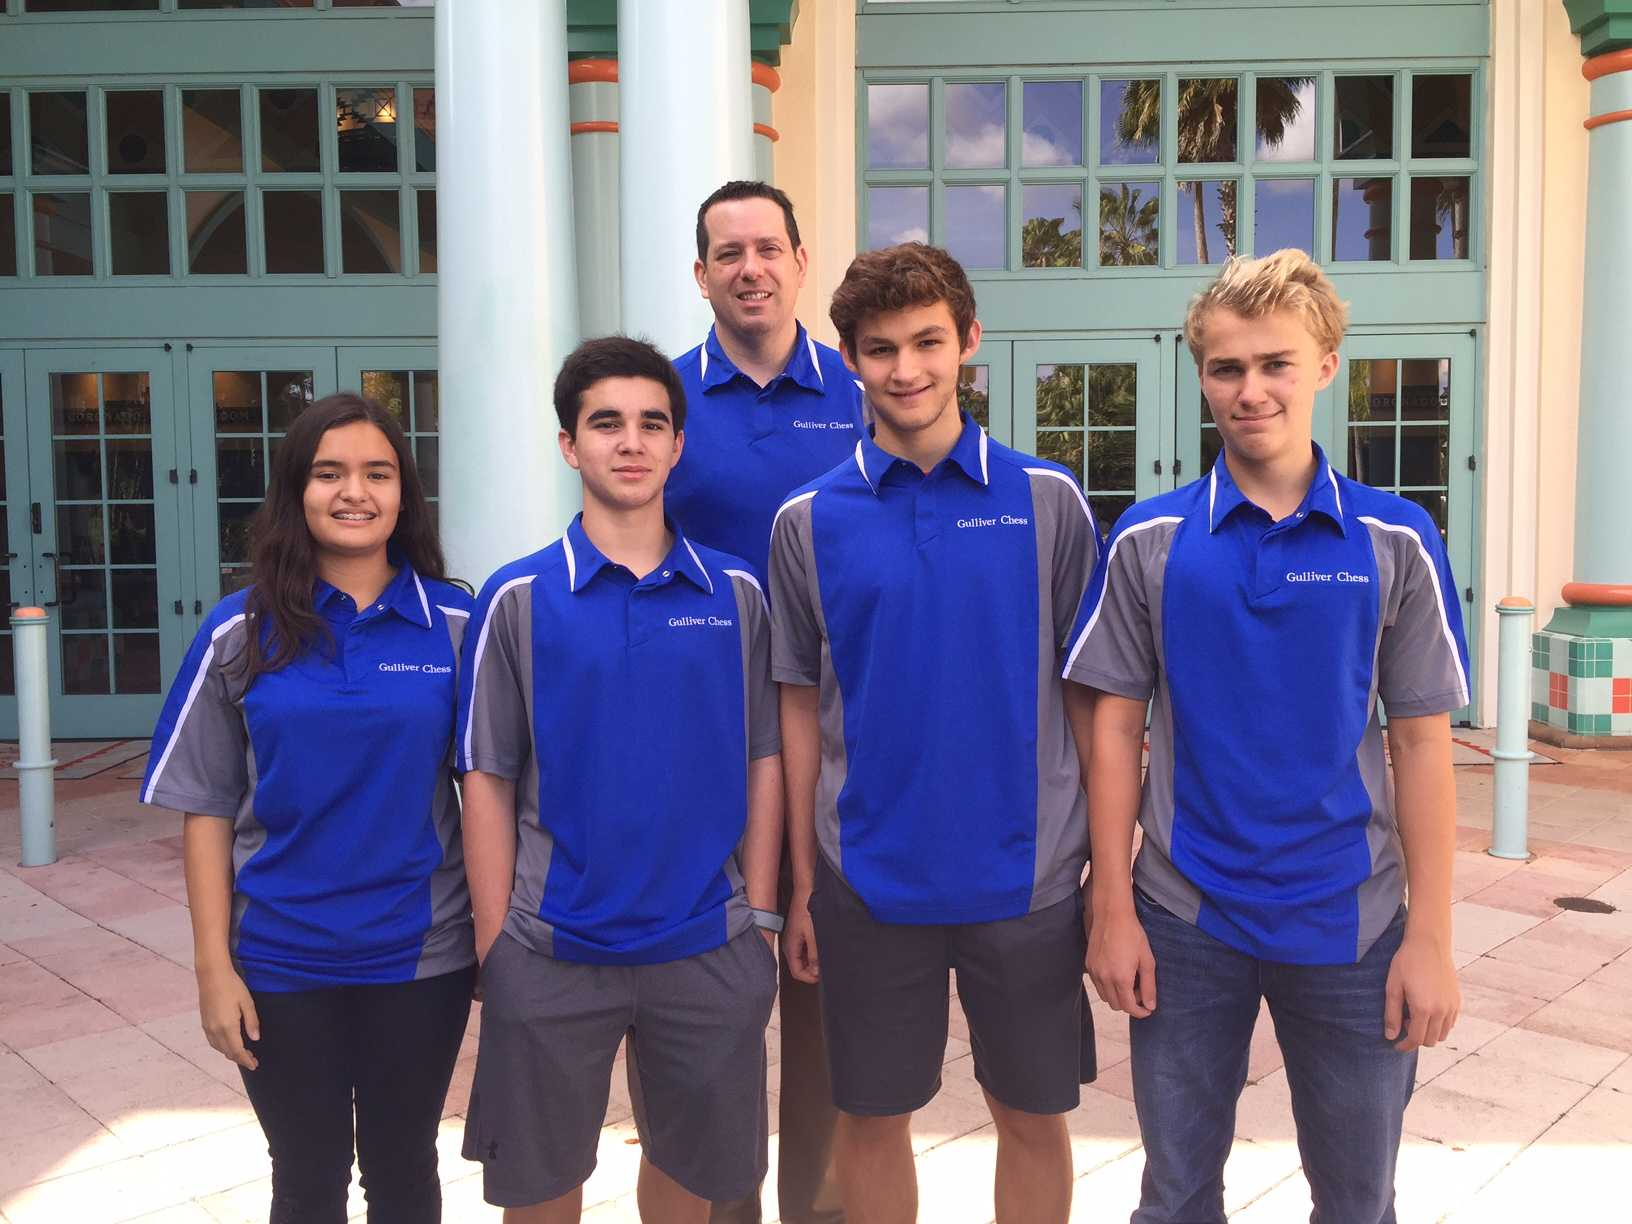 Chess Team Awarded Runner up at Nationals